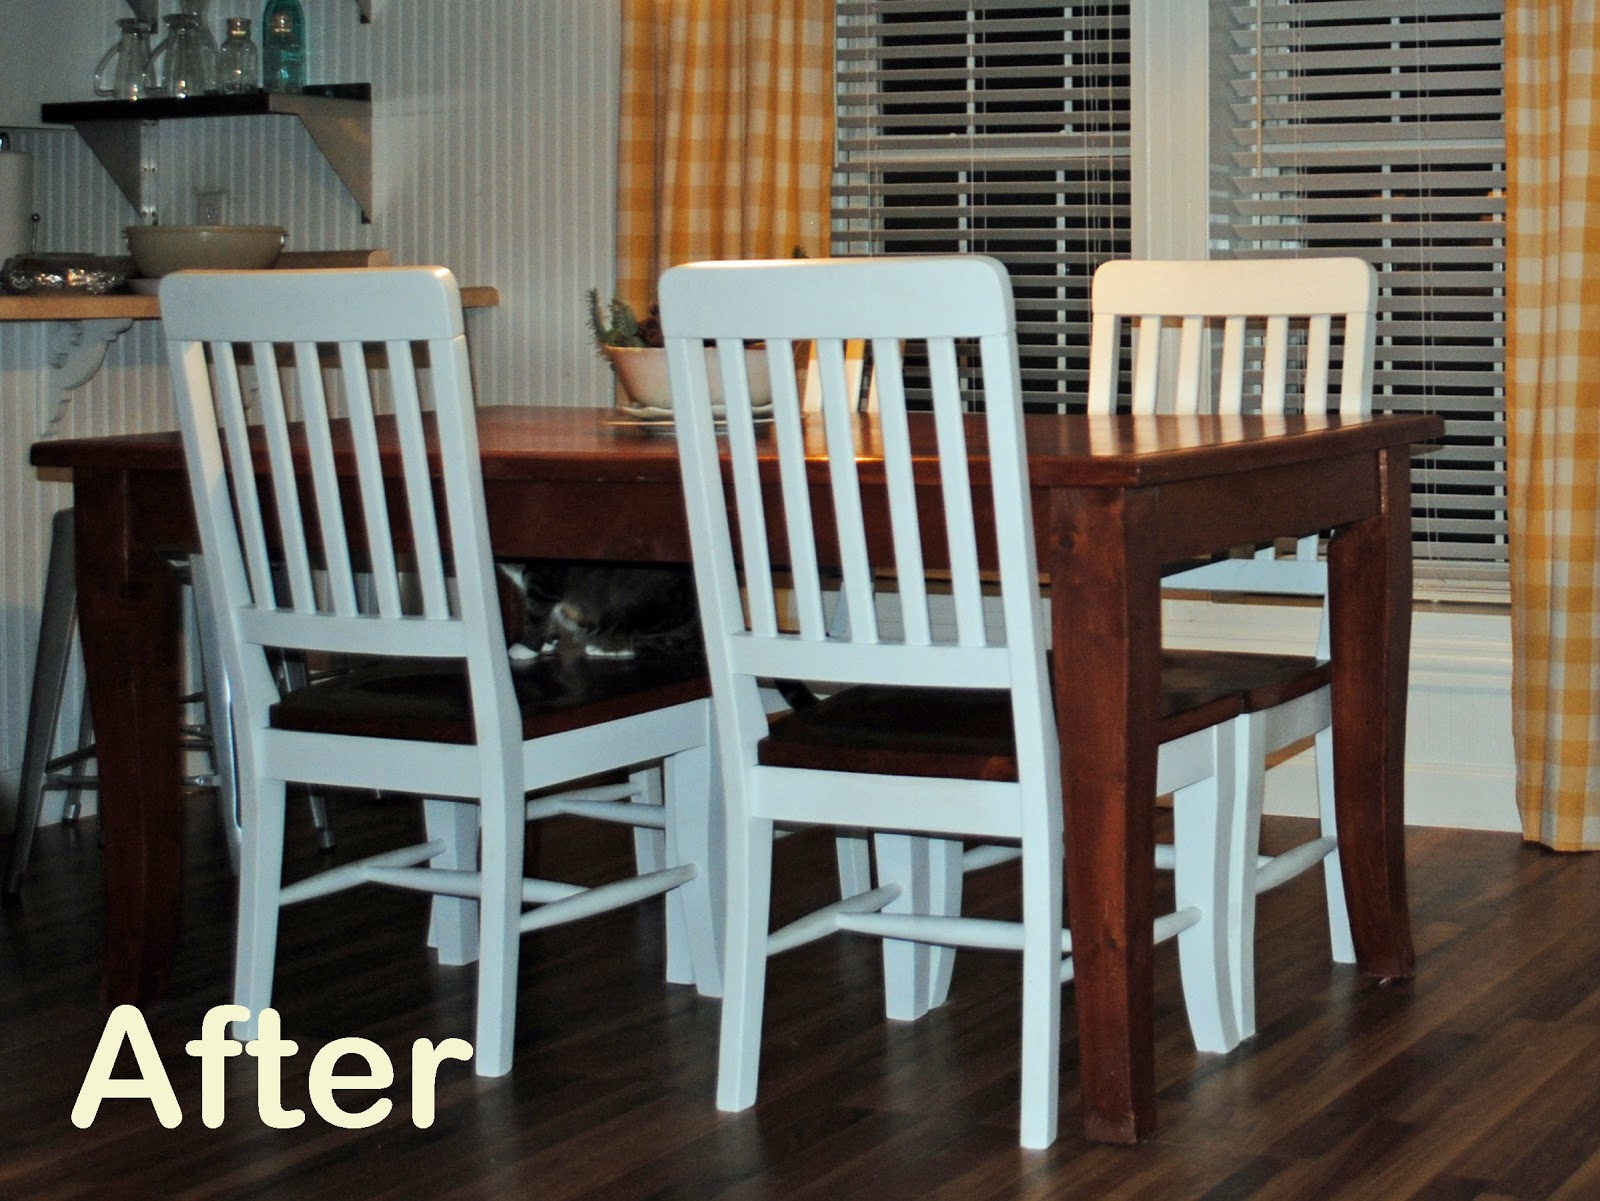 Runs with Scraps...: Refinish an Old Knotty Pine Dining Table: The Story